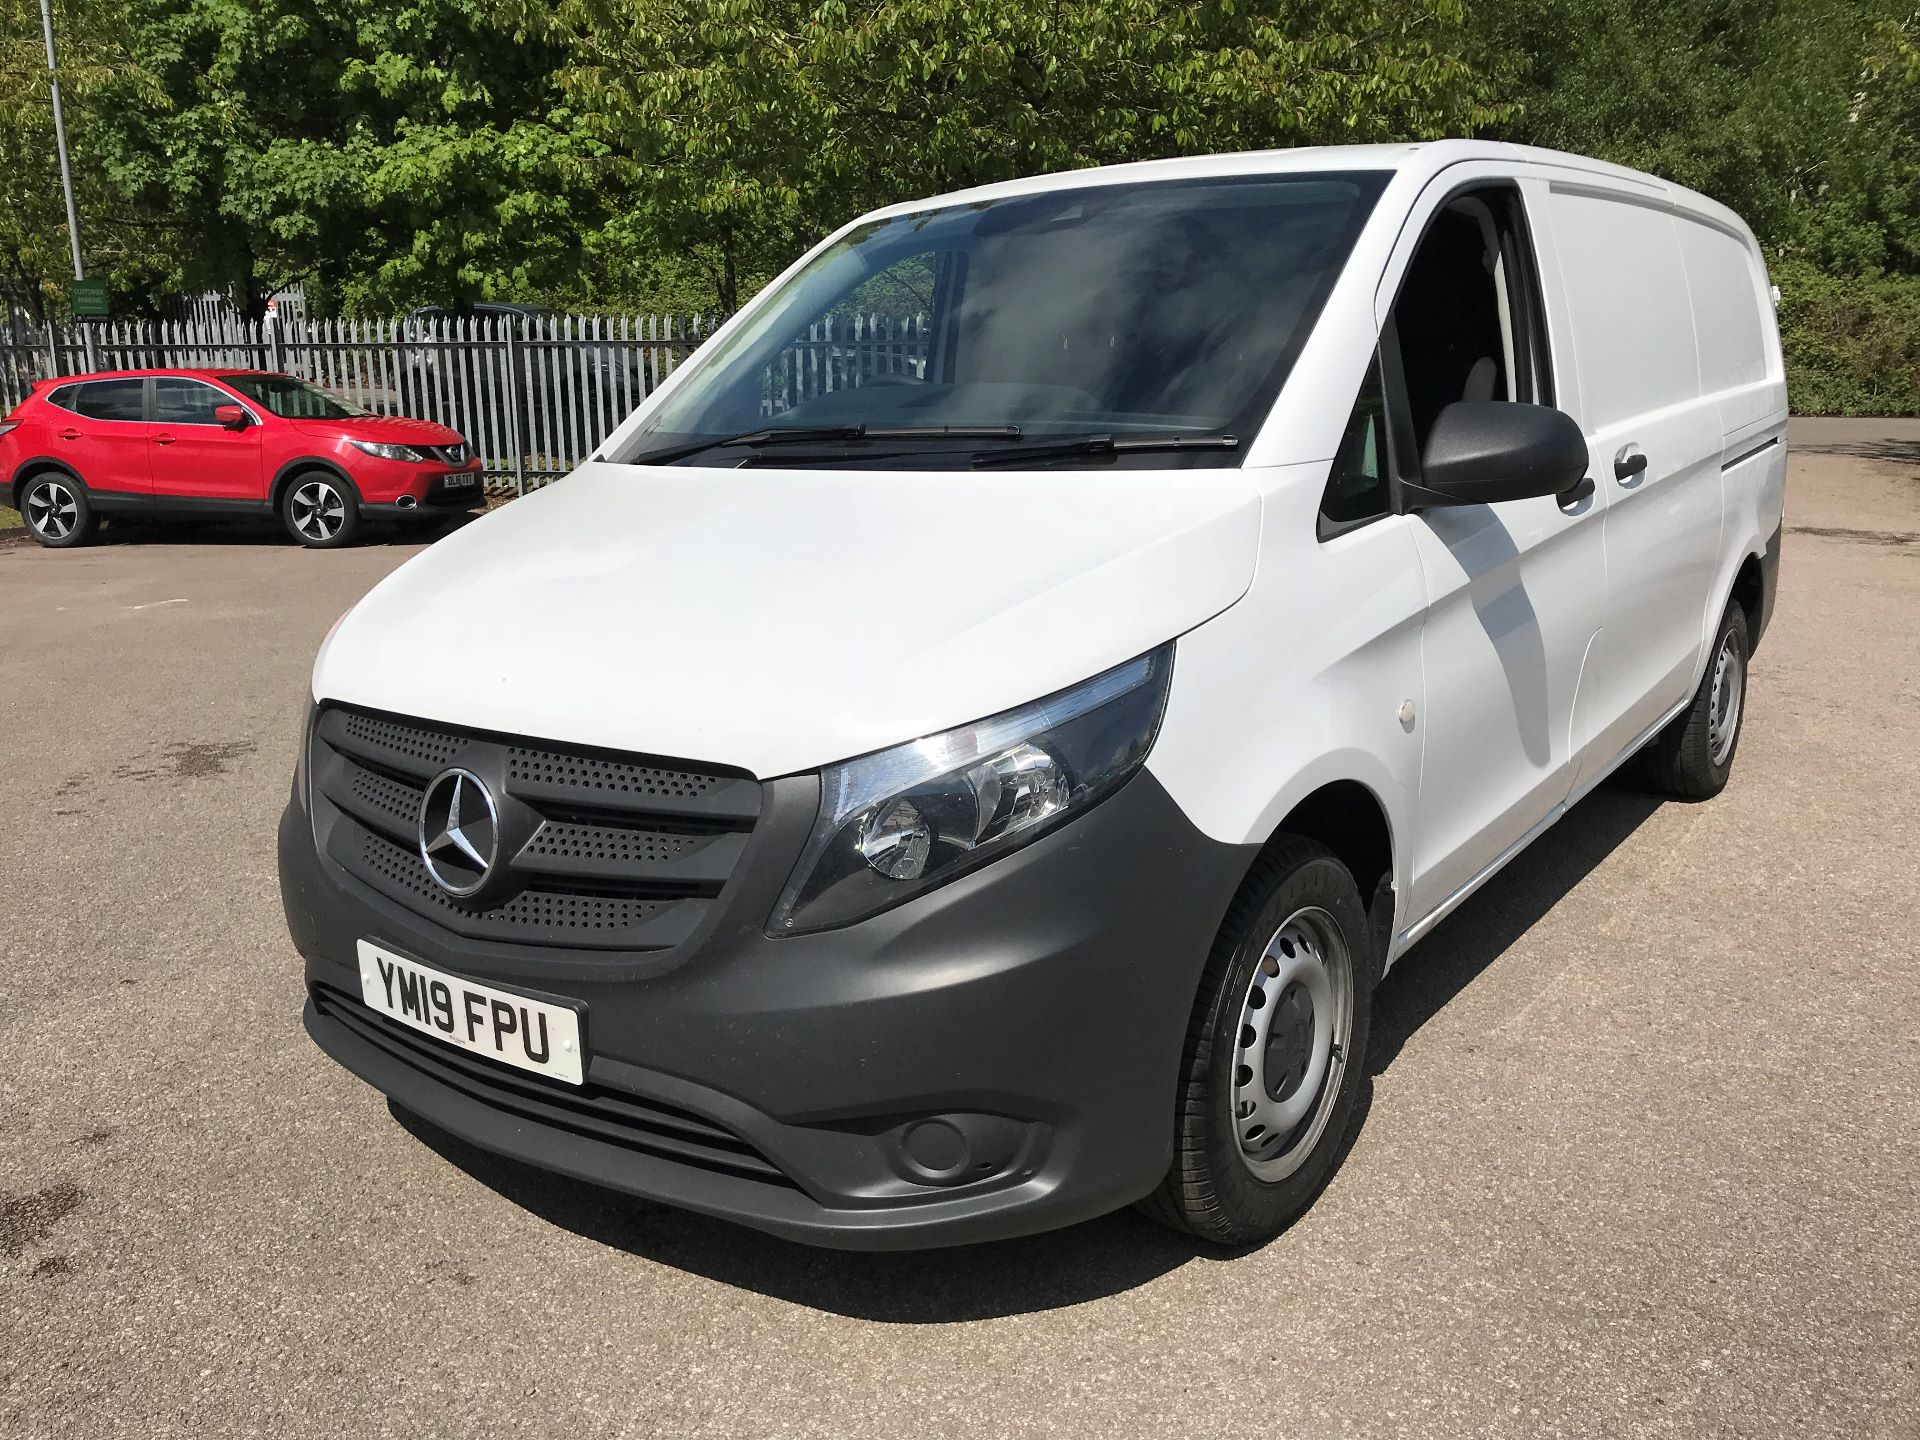 2019 Mercedes-Benz Vito 111Cdi Van Euro 6 Massive specification A/C (YM19FPU)